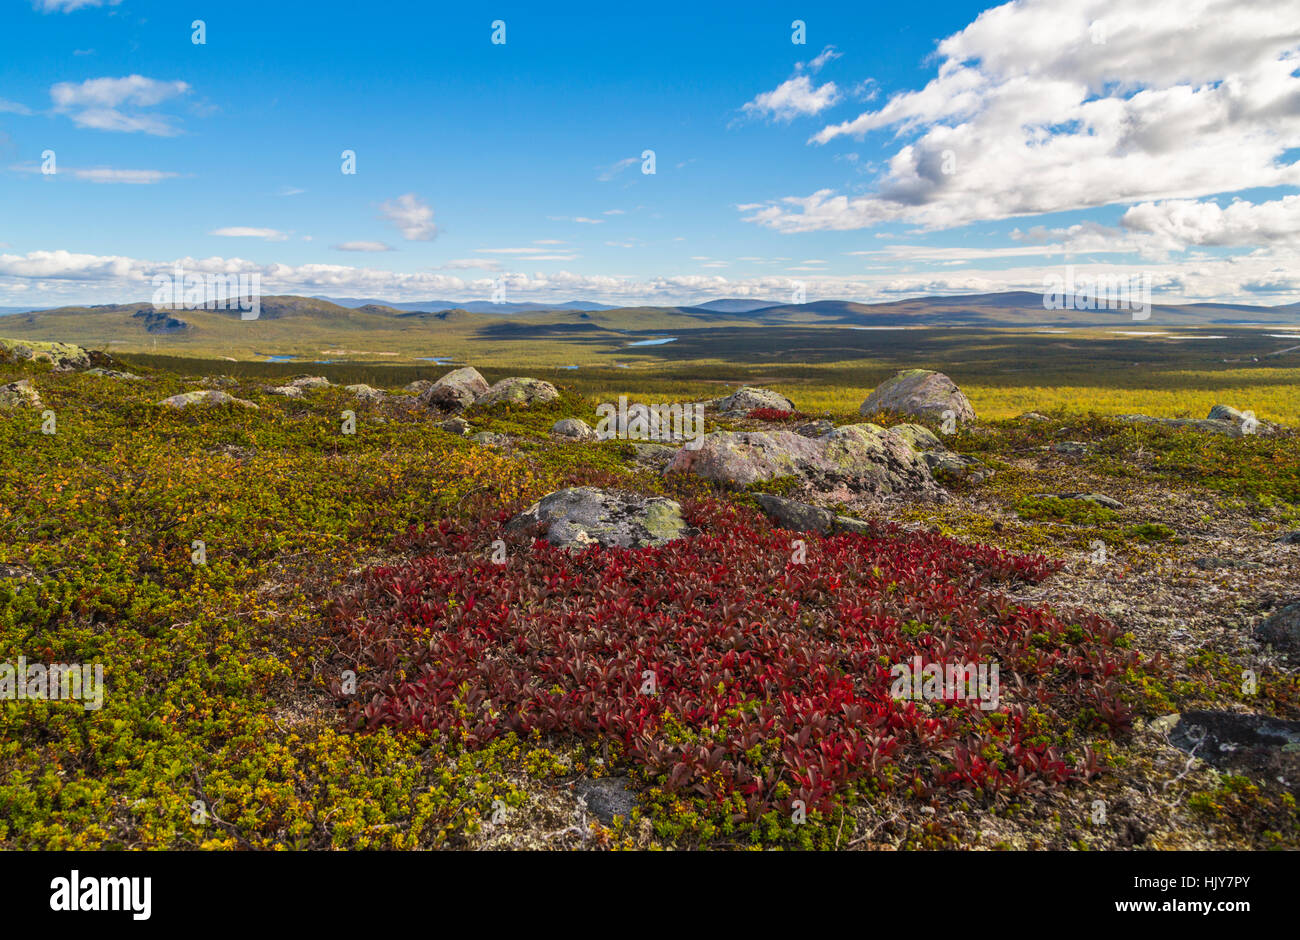 Autumn landscape with alpine bearberry in foreground and mountains in background, Kiruna, Swedish Lapland, Sweden Stock Photo